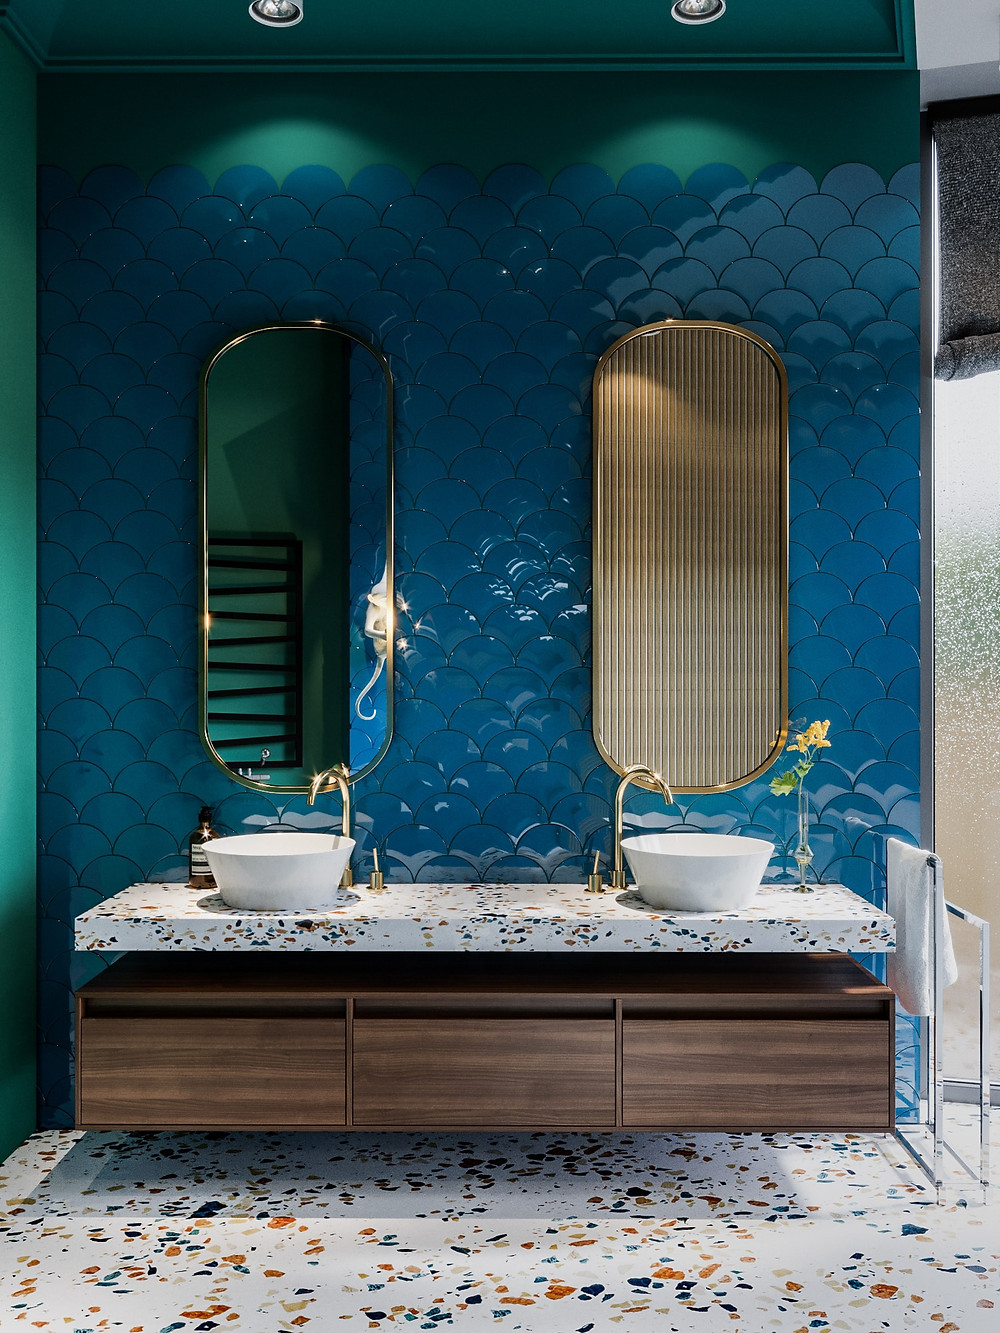 scallop ceramic tiles and oval mirror seletti hanging monkey pendant and terrazzo floor green ceiling